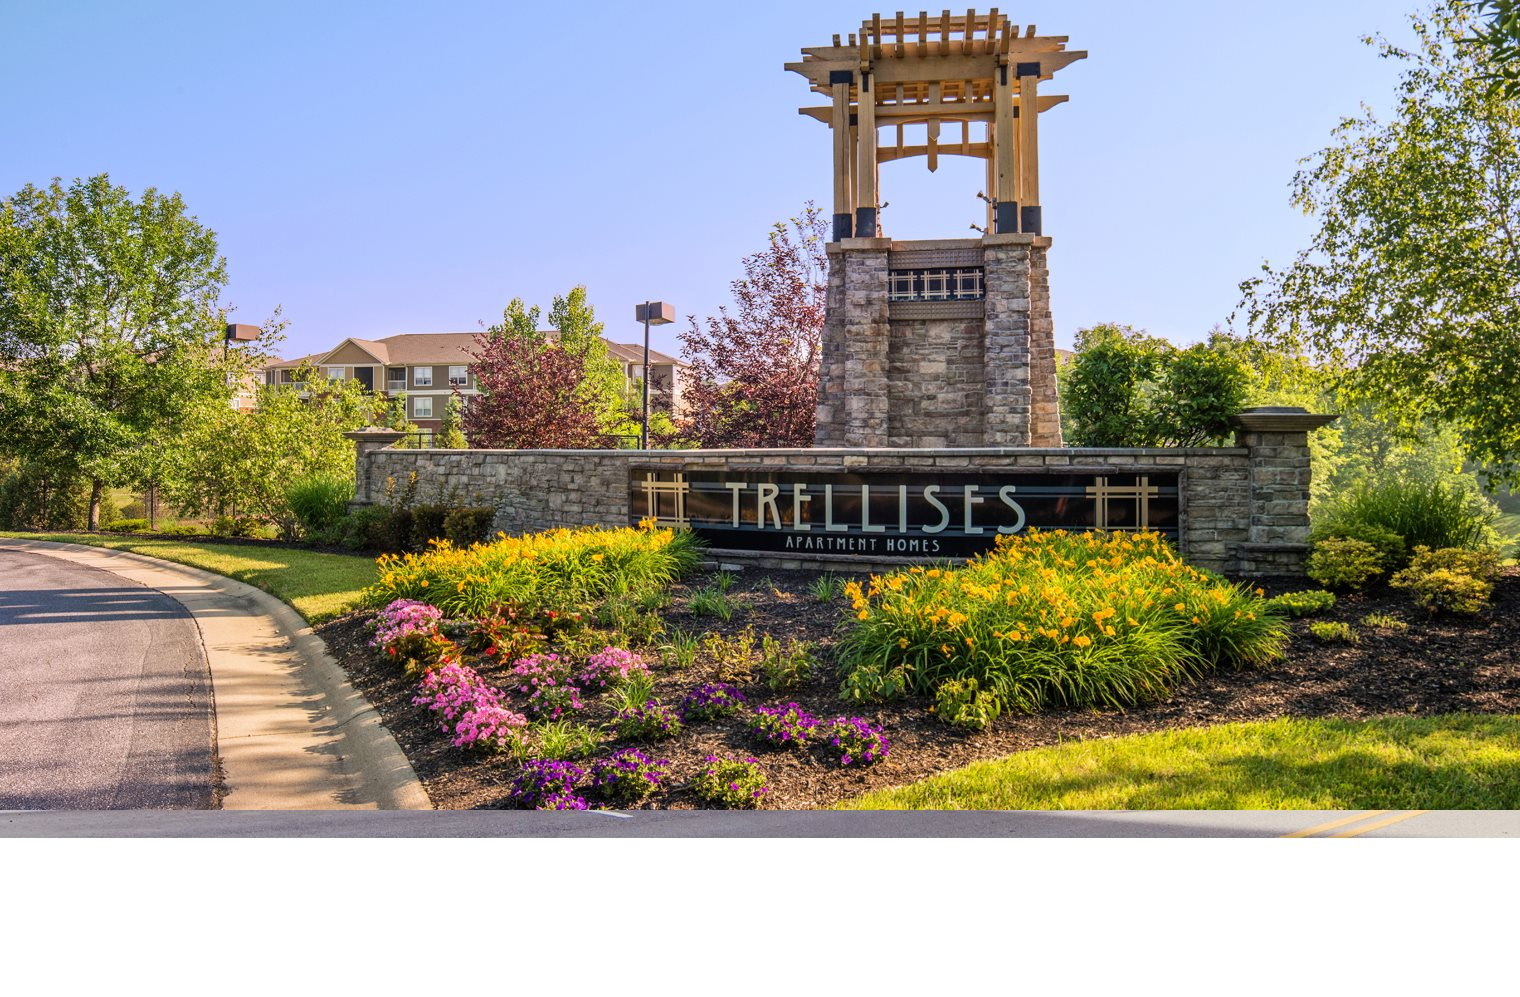 The Trellises Apartments | Apartments in Florence, KY